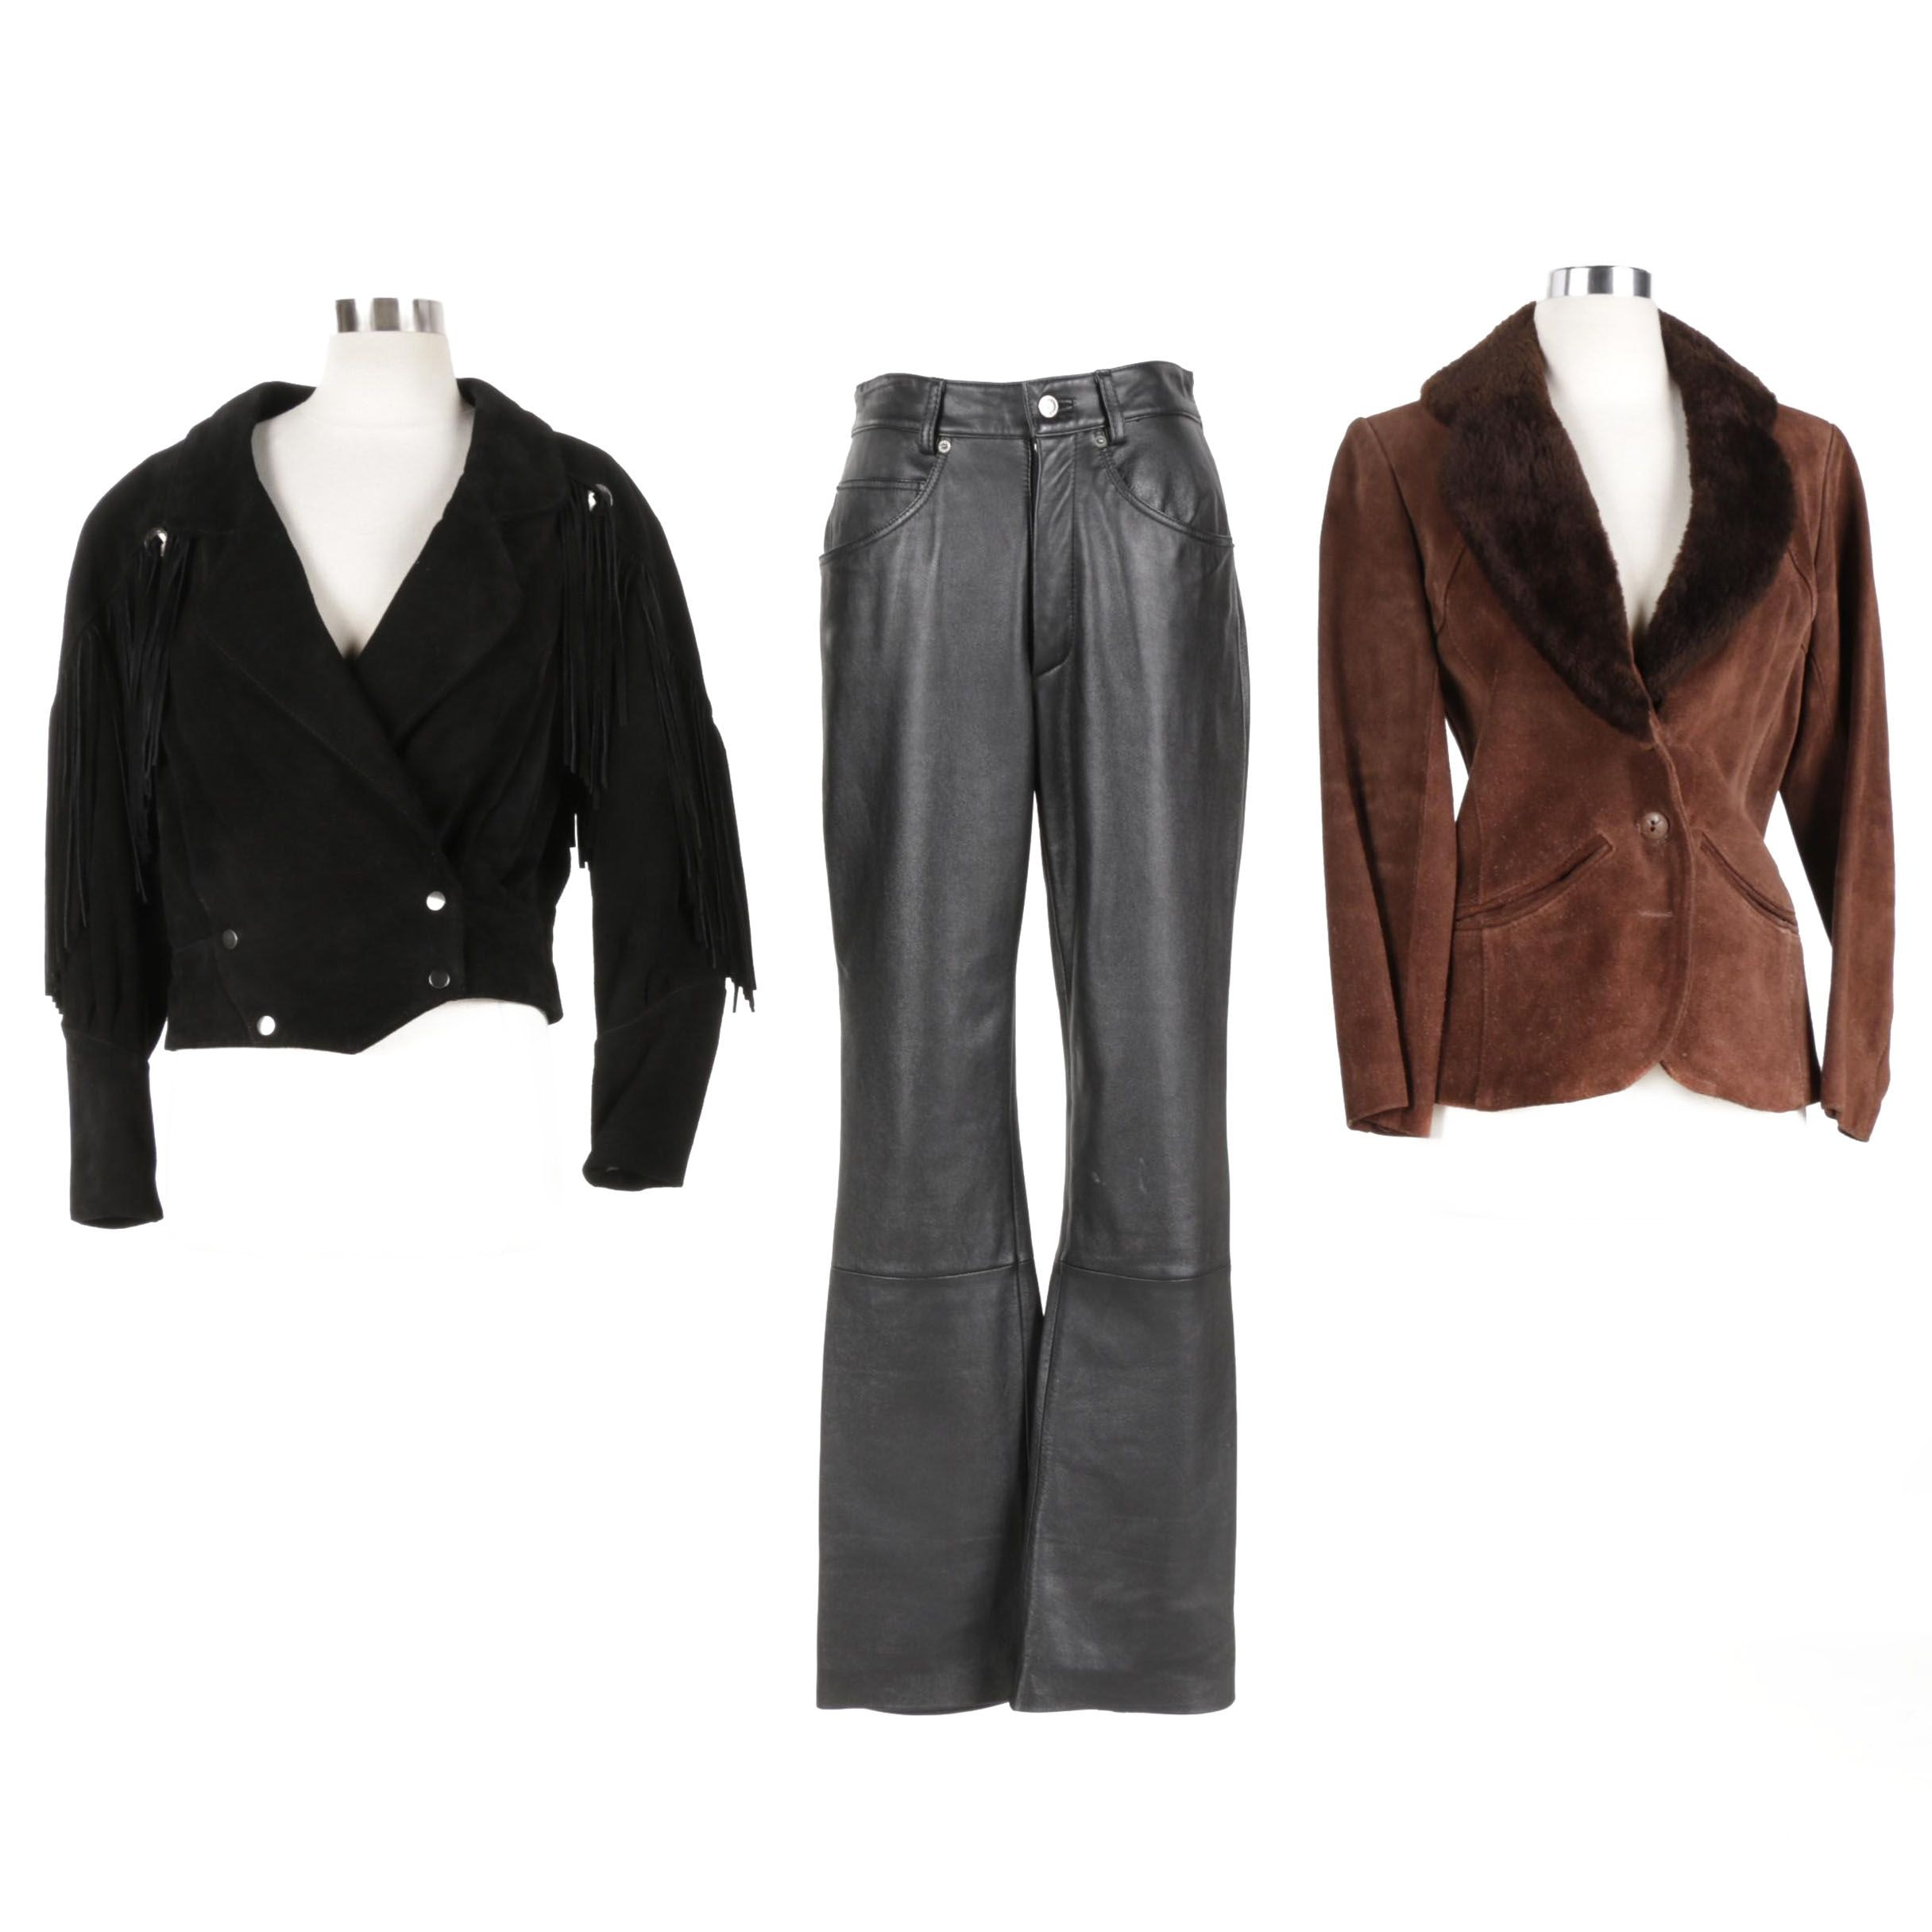 Women's Leather Jackets and Pants